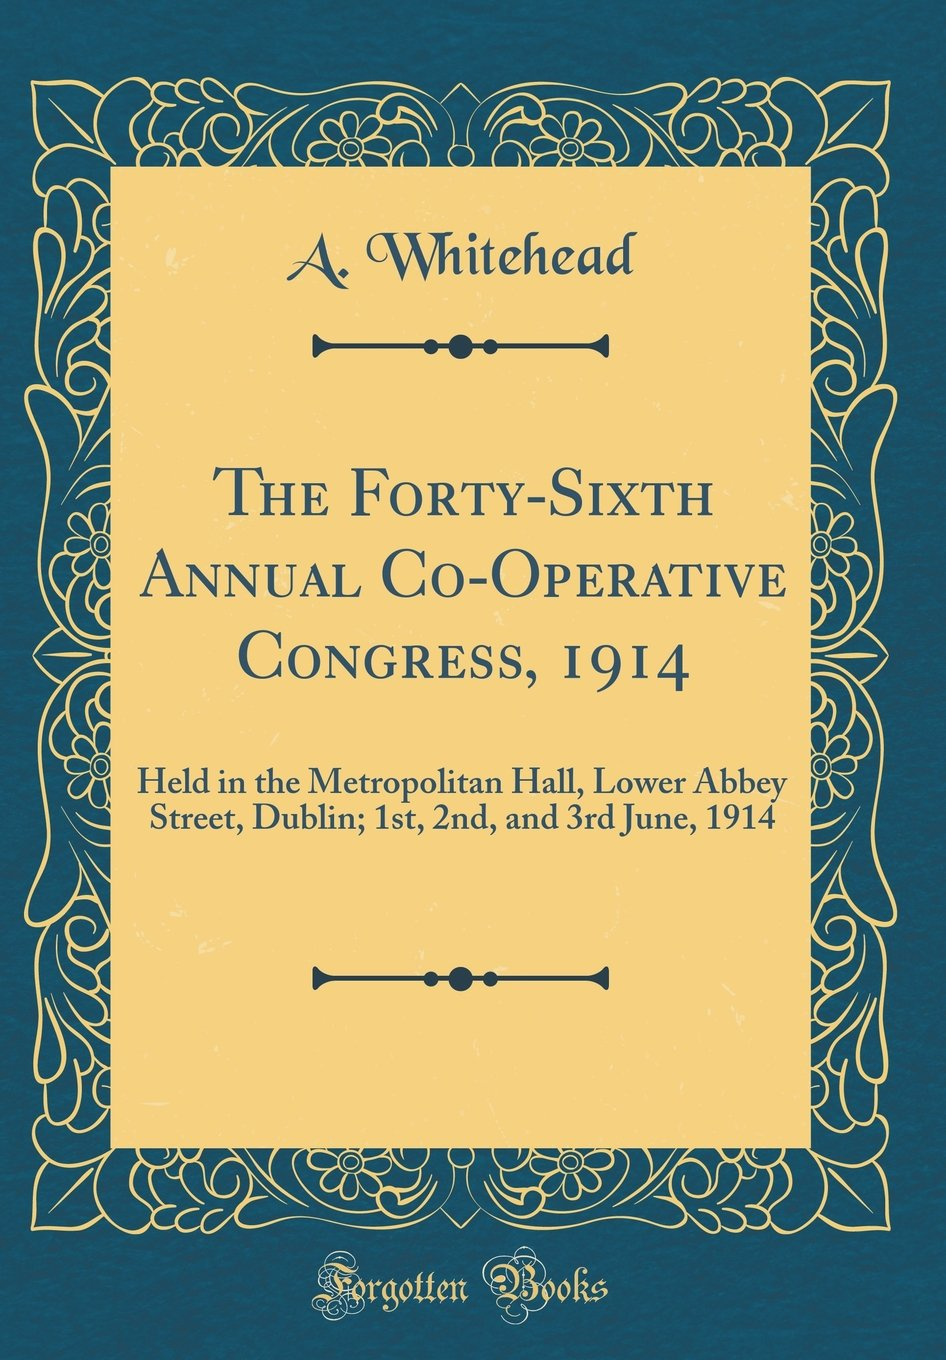 Read Online The Forty-Sixth Annual Co-Operative Congress, 1914: Held in the Metropolitan Hall, Lower Abbey Street, Dublin; 1st, 2nd, and 3rd June, 1914 (Classic Reprint) ebook